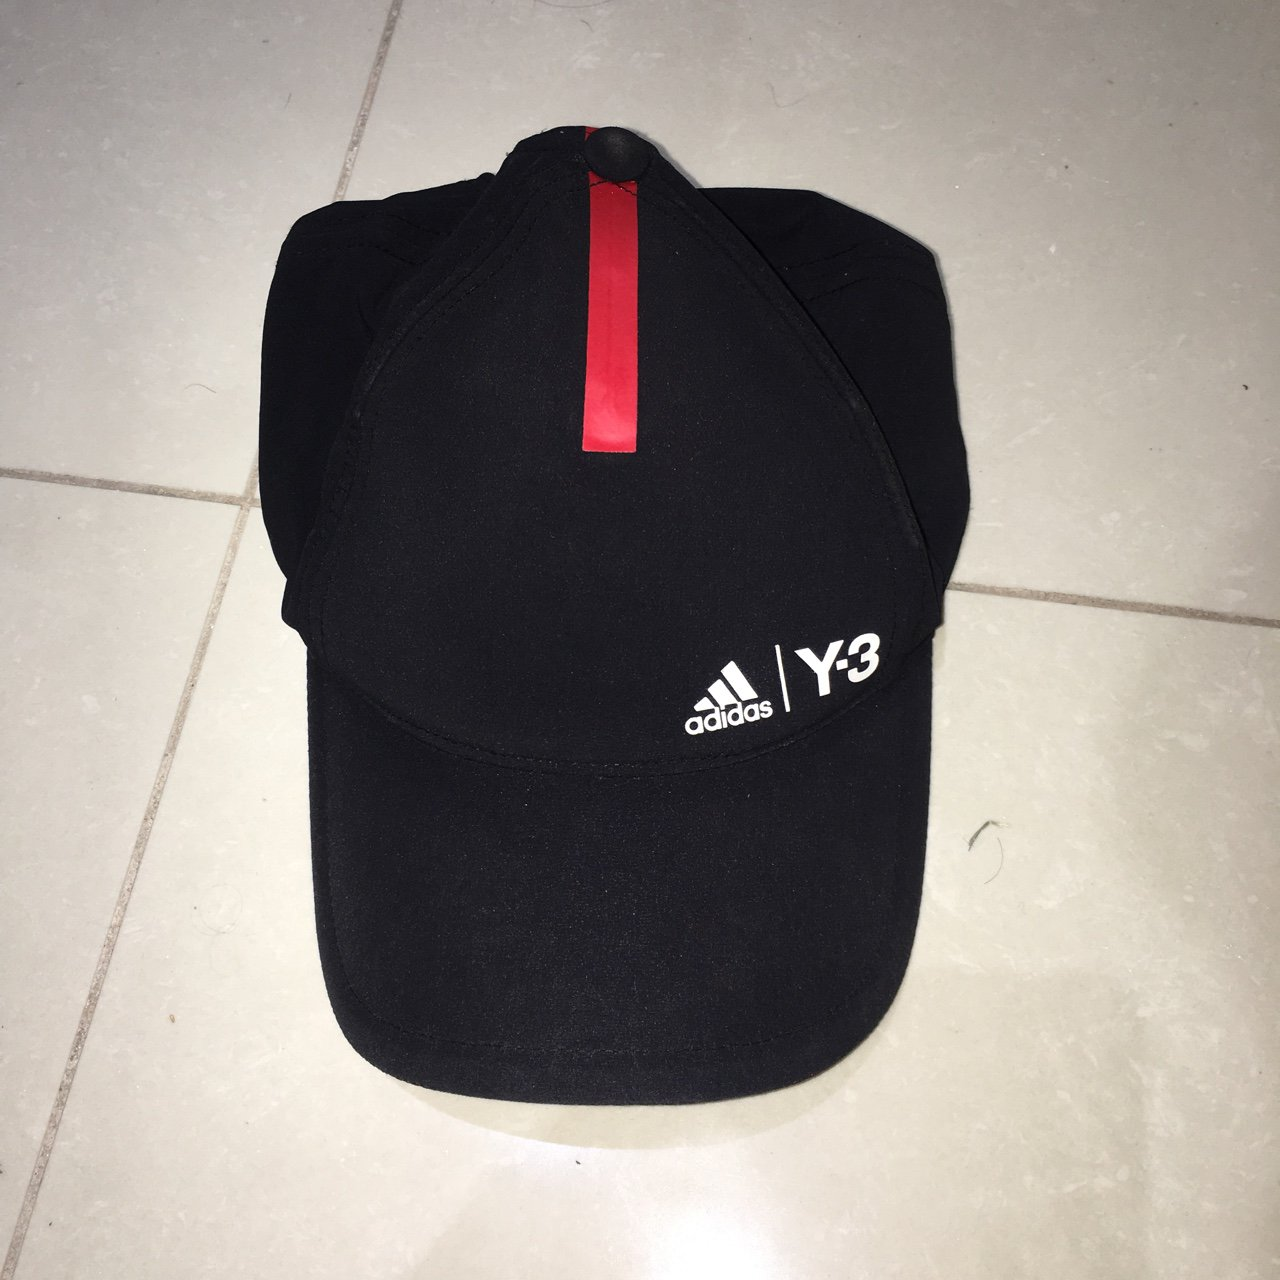 ADIDAS X Y3 HAT never seen before extremely rare! Dri fit - Depop fcf36b3e83a